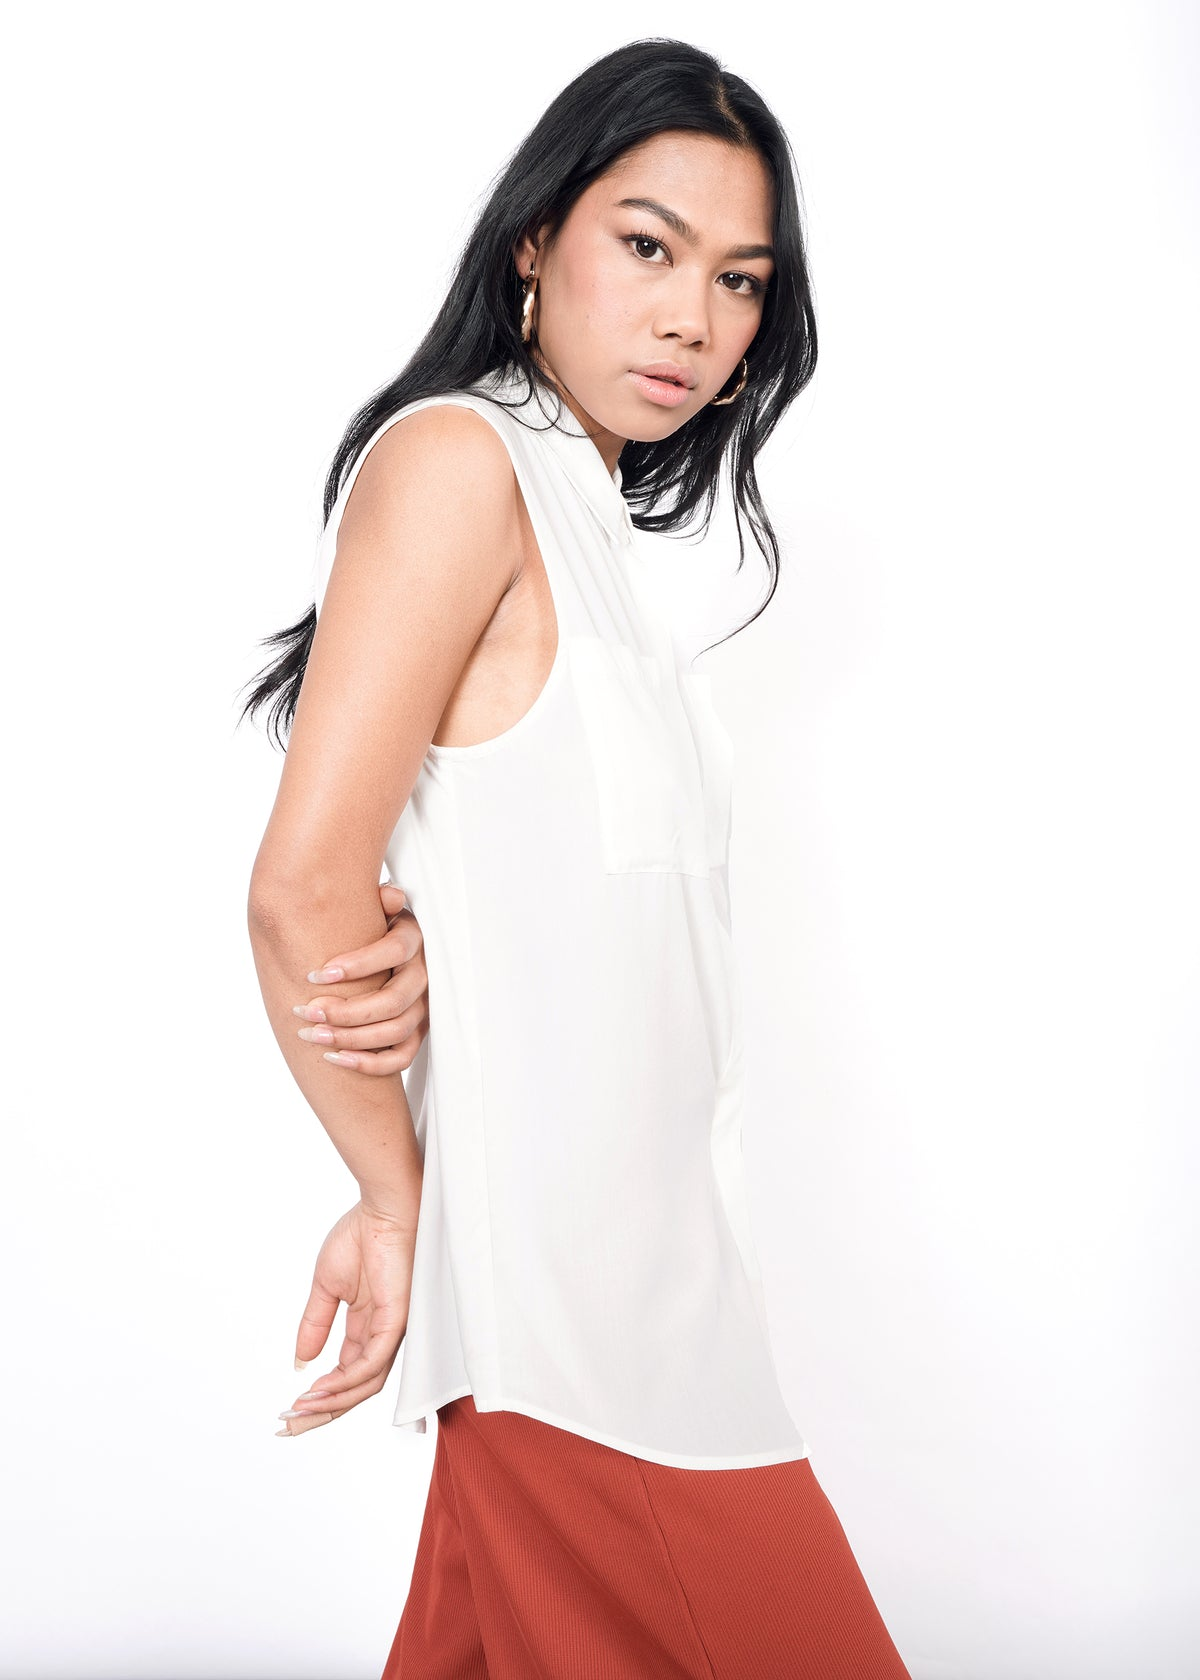 Model wearing white sleeveless drapey button up shirt in size XS, with orange pants and arms behind back